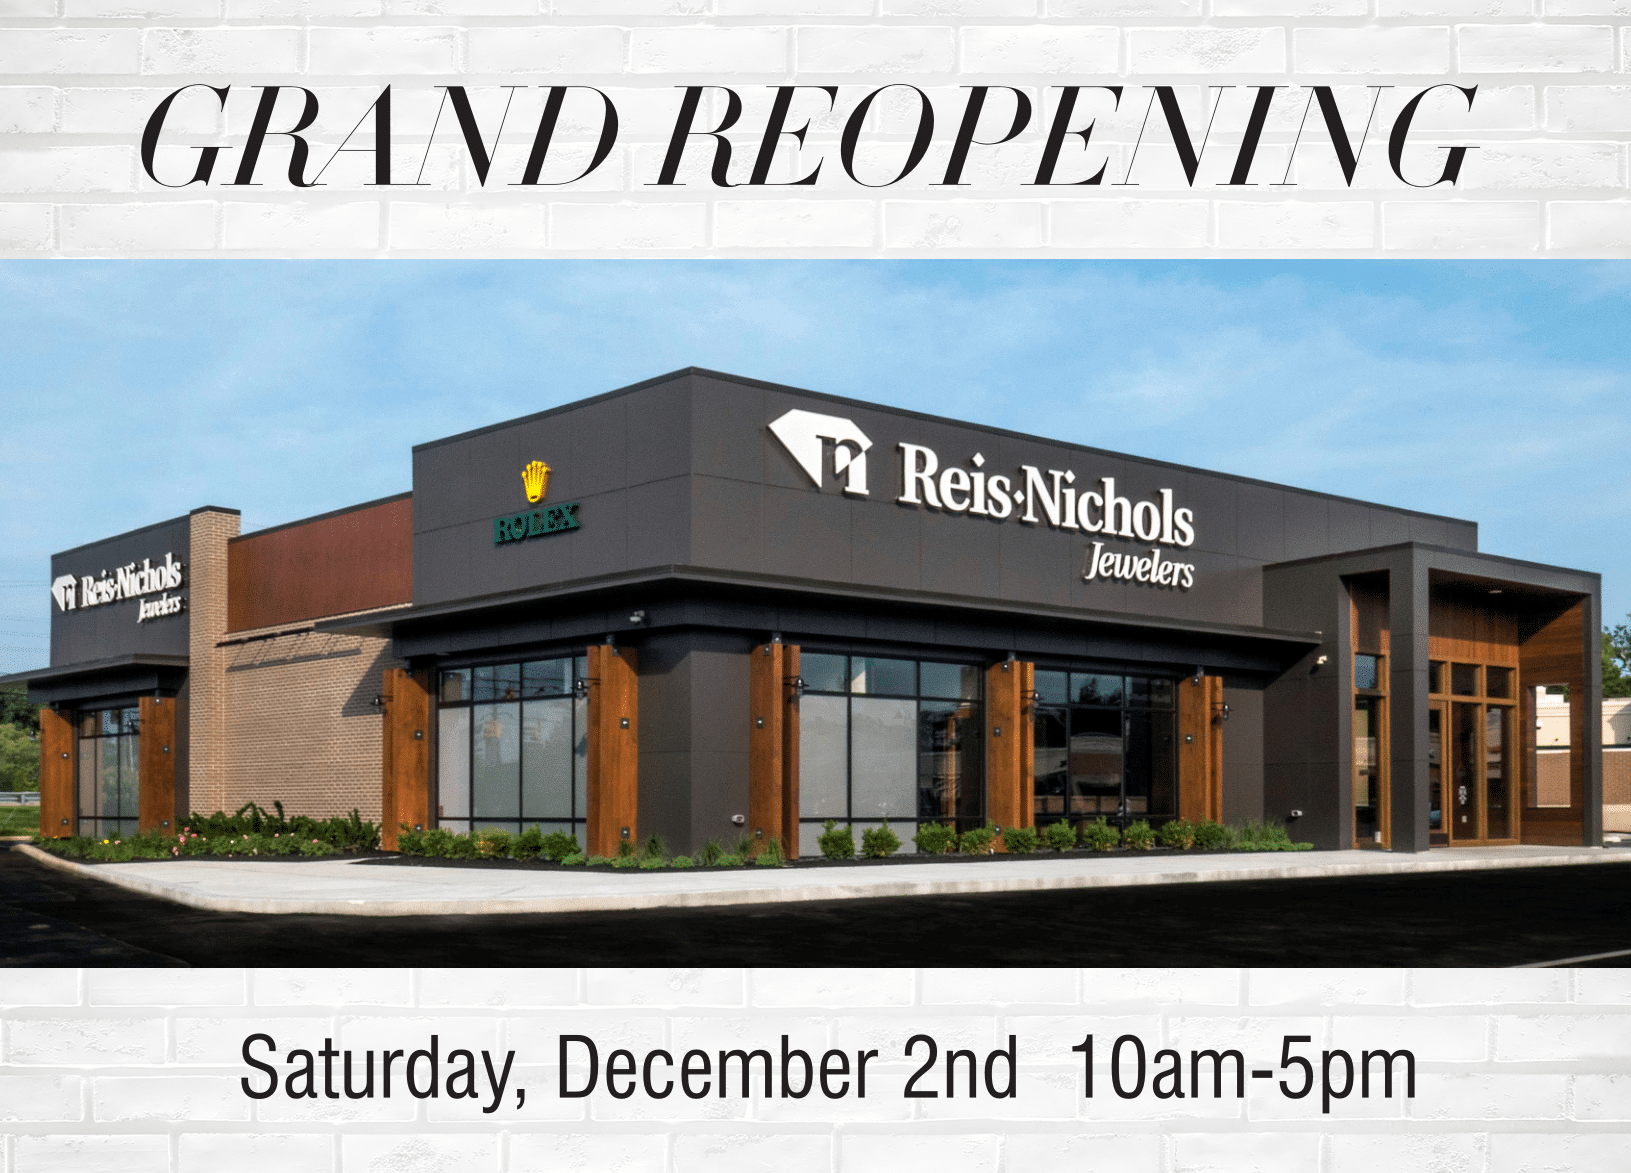 reis-nichols grand reopening